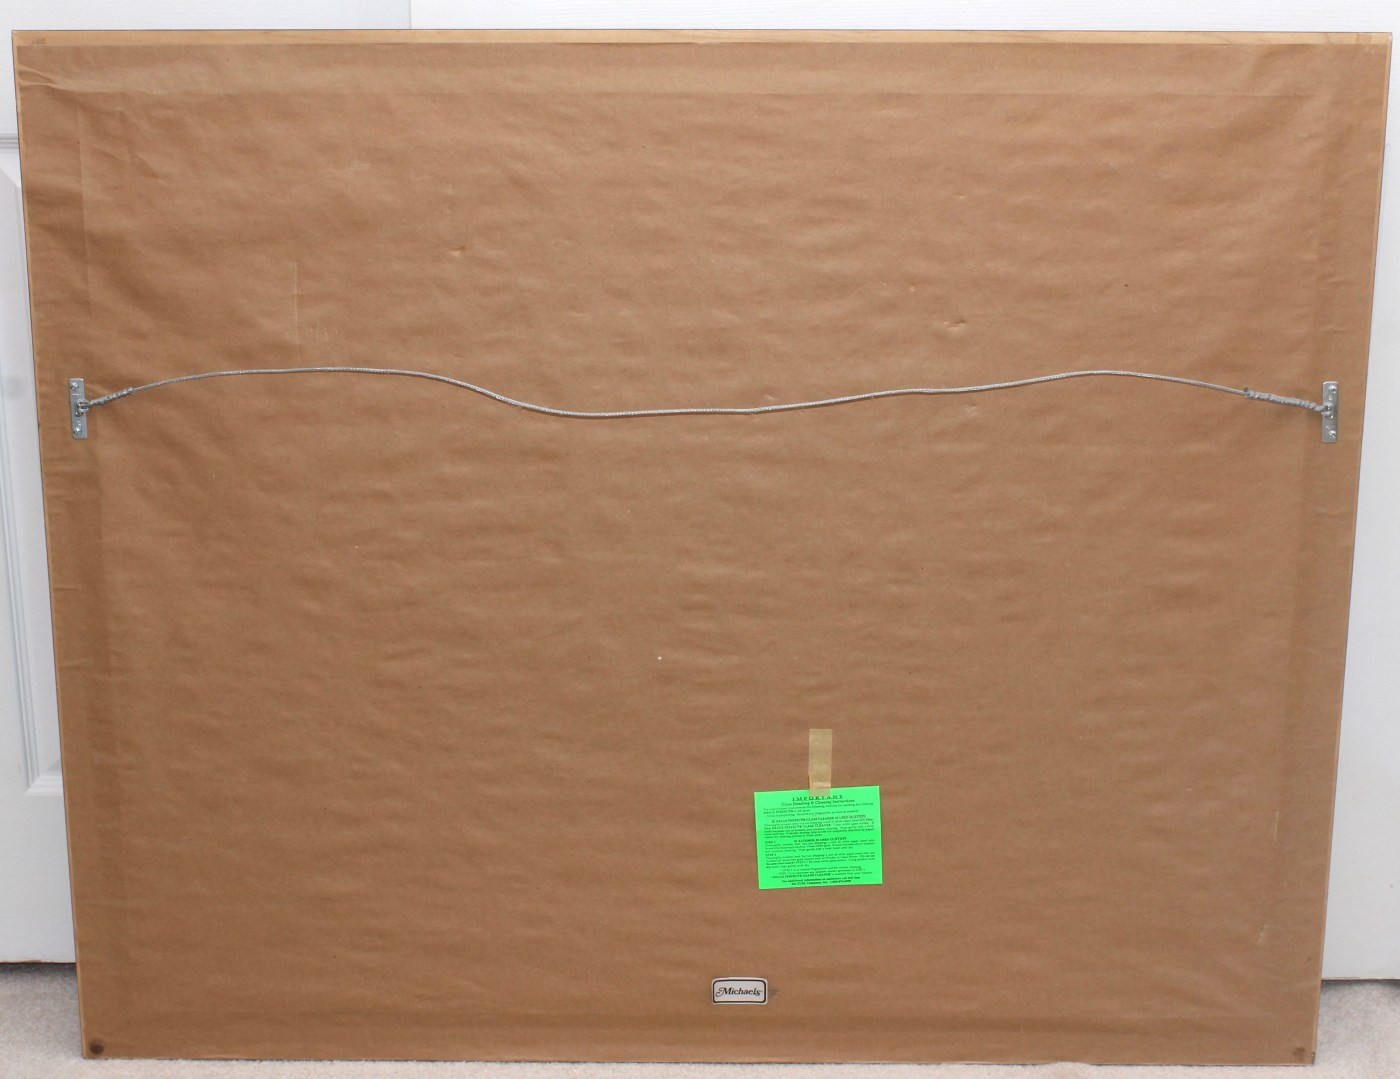 Signed Booth Cabot Limited Edition Offset Lithograph